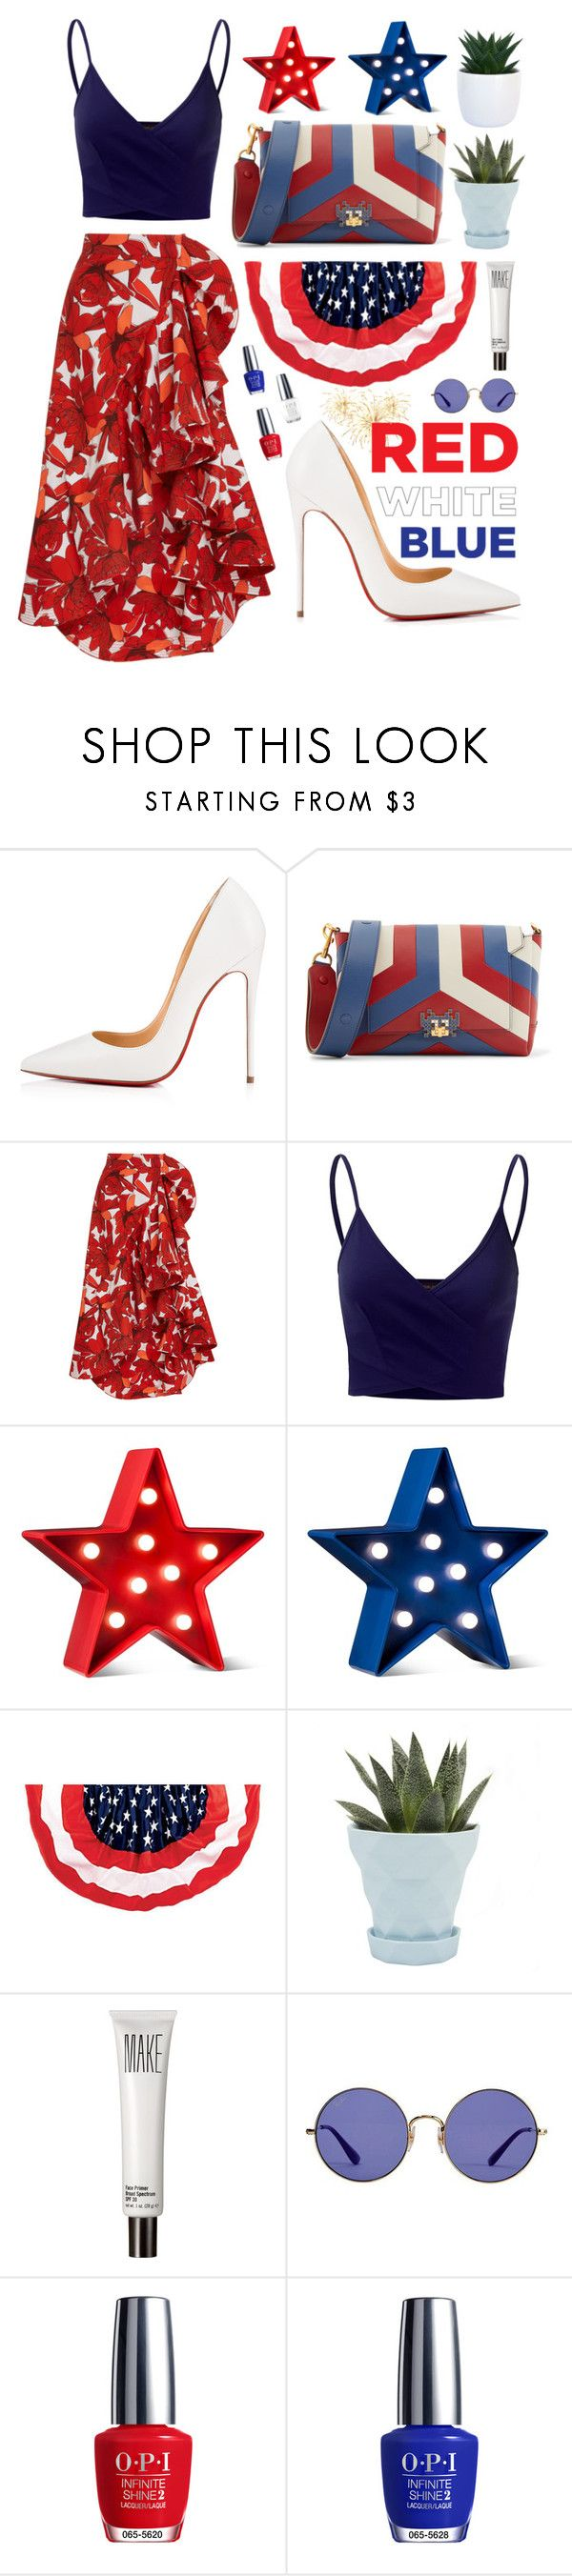 """""""Party in the USA"""" by verenagyuneth ❤ liked on Polyvore featuring Christian Louboutin, Anya Hindmarch, Johanna Ortiz, Doublju, POPTIMISM!, Chive, Make, Ray-Ban, OPI and fourthofjuly"""